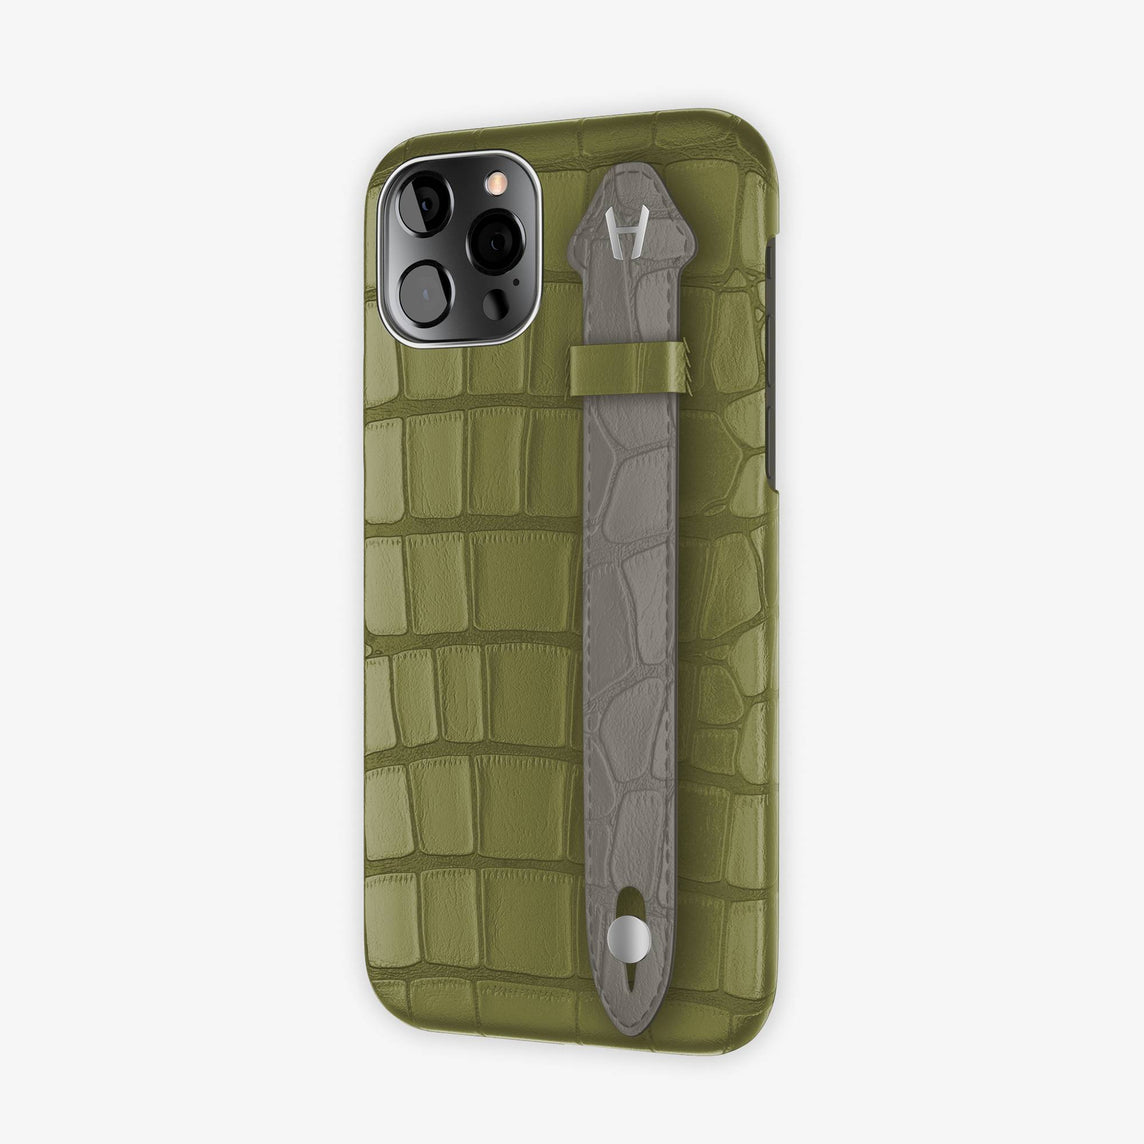 Alligator Side Finger Case iPhone 12 & iPhone 12 Pro | Khaki/Grey Pearl  -Stainless Steel